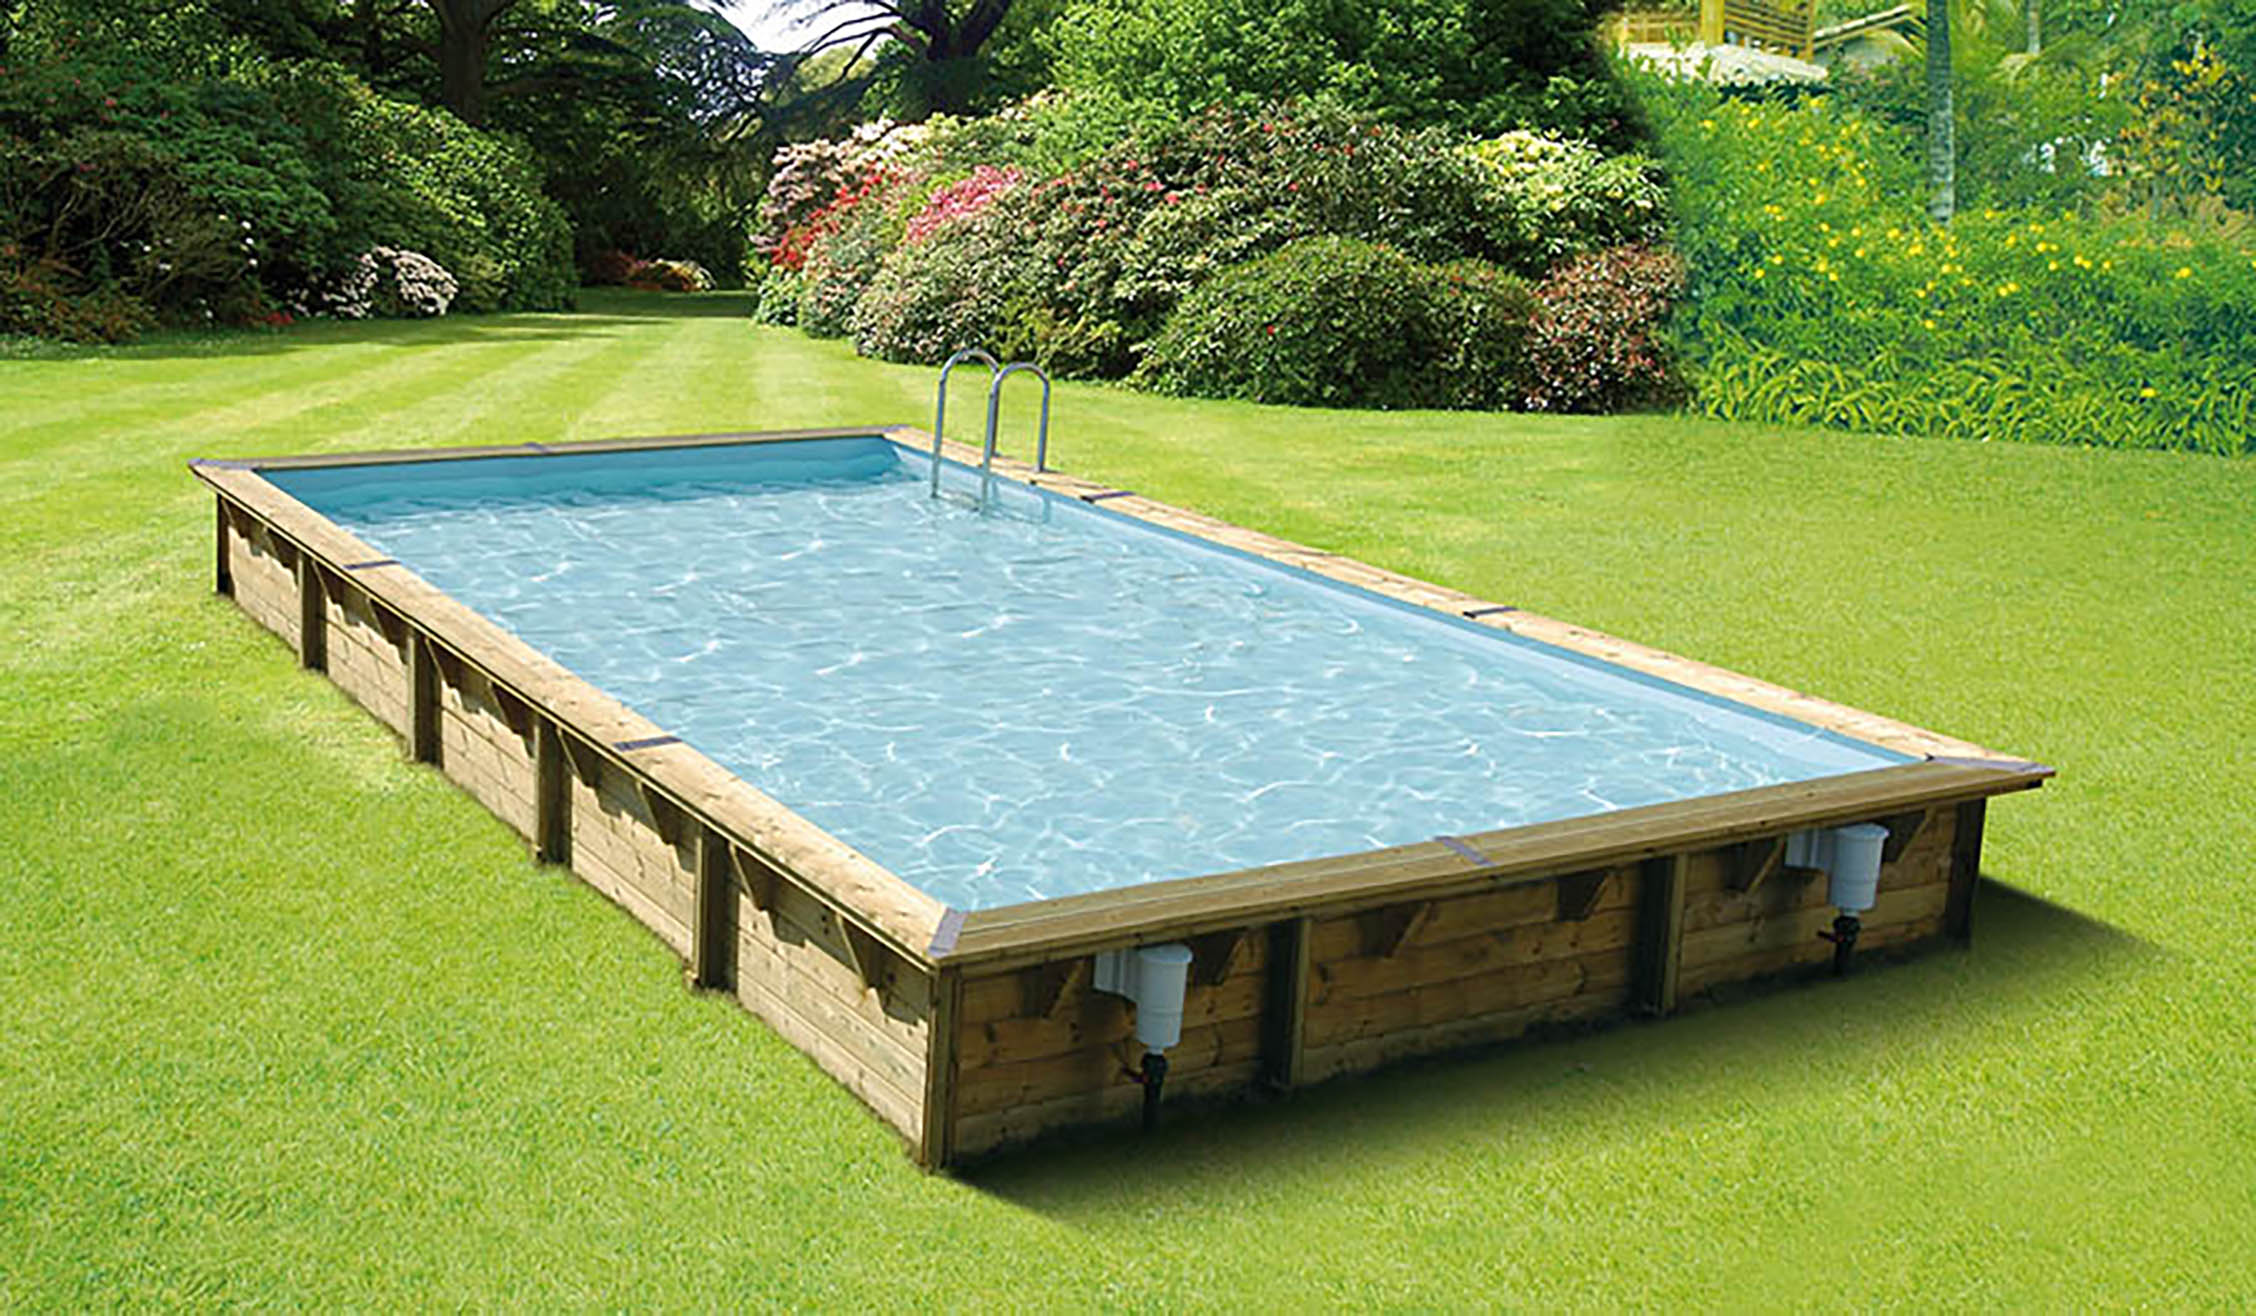 Amenagement piscine bois hors sol id es for Piscine hors sol en solde